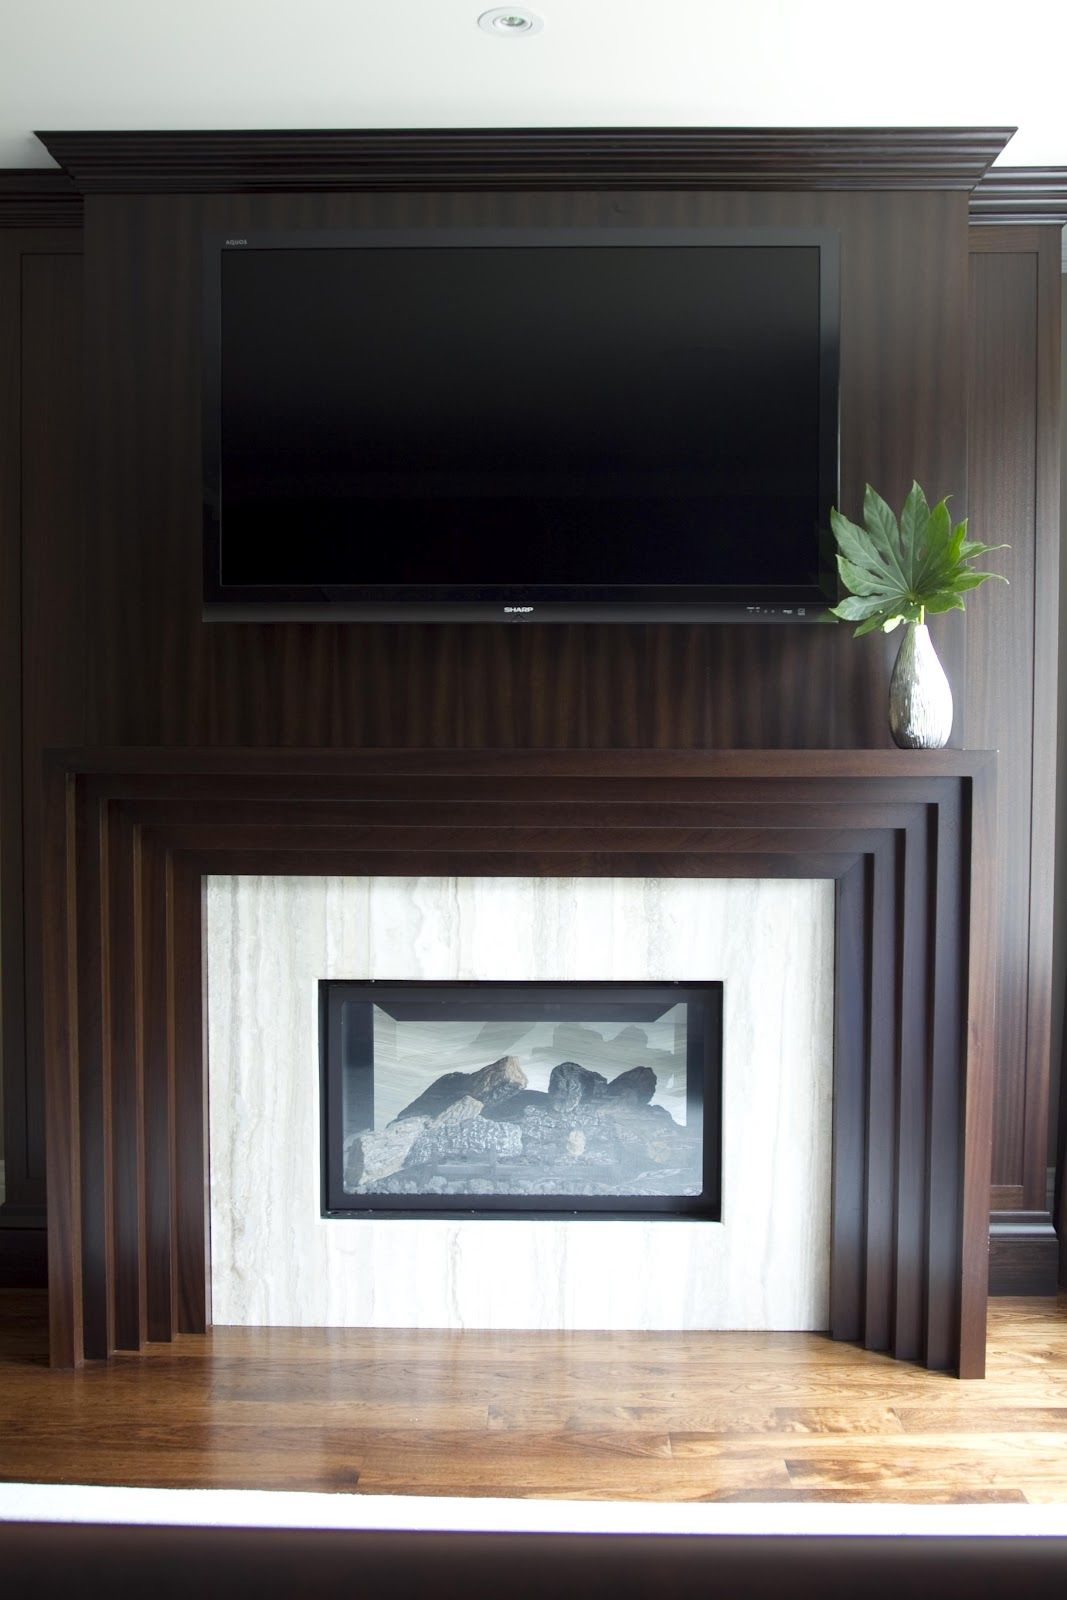 Rock Fireplace Mantel 20 Nature-loving Fireplace Ideas